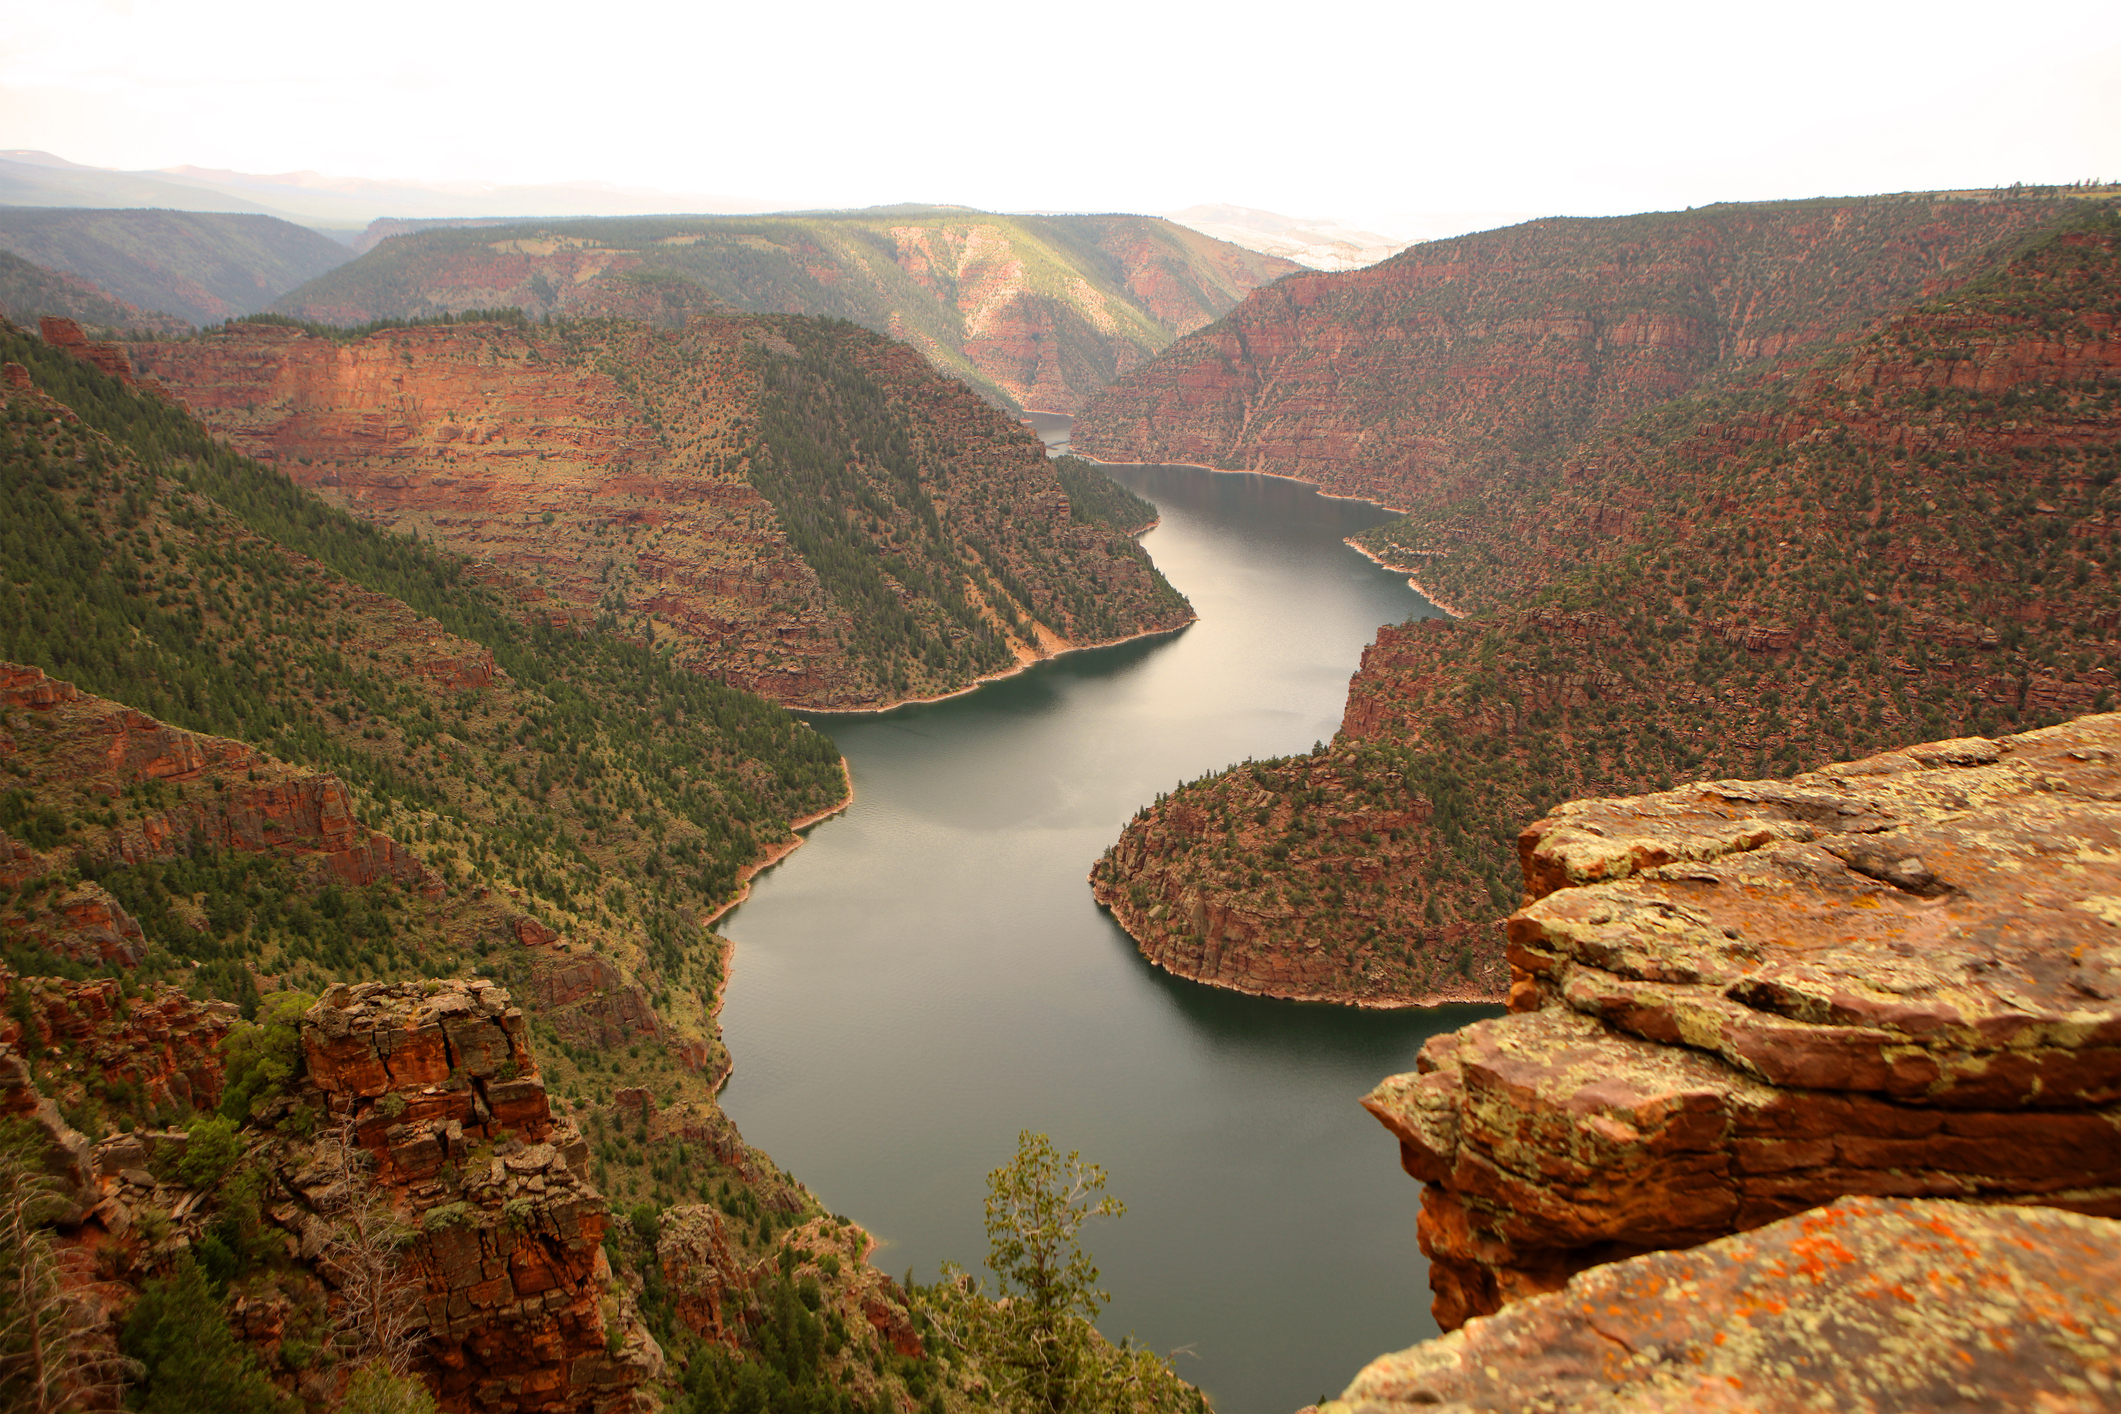 Red Canyon Viewpoint at Flaming Gorge Recreational Area in Utah USA